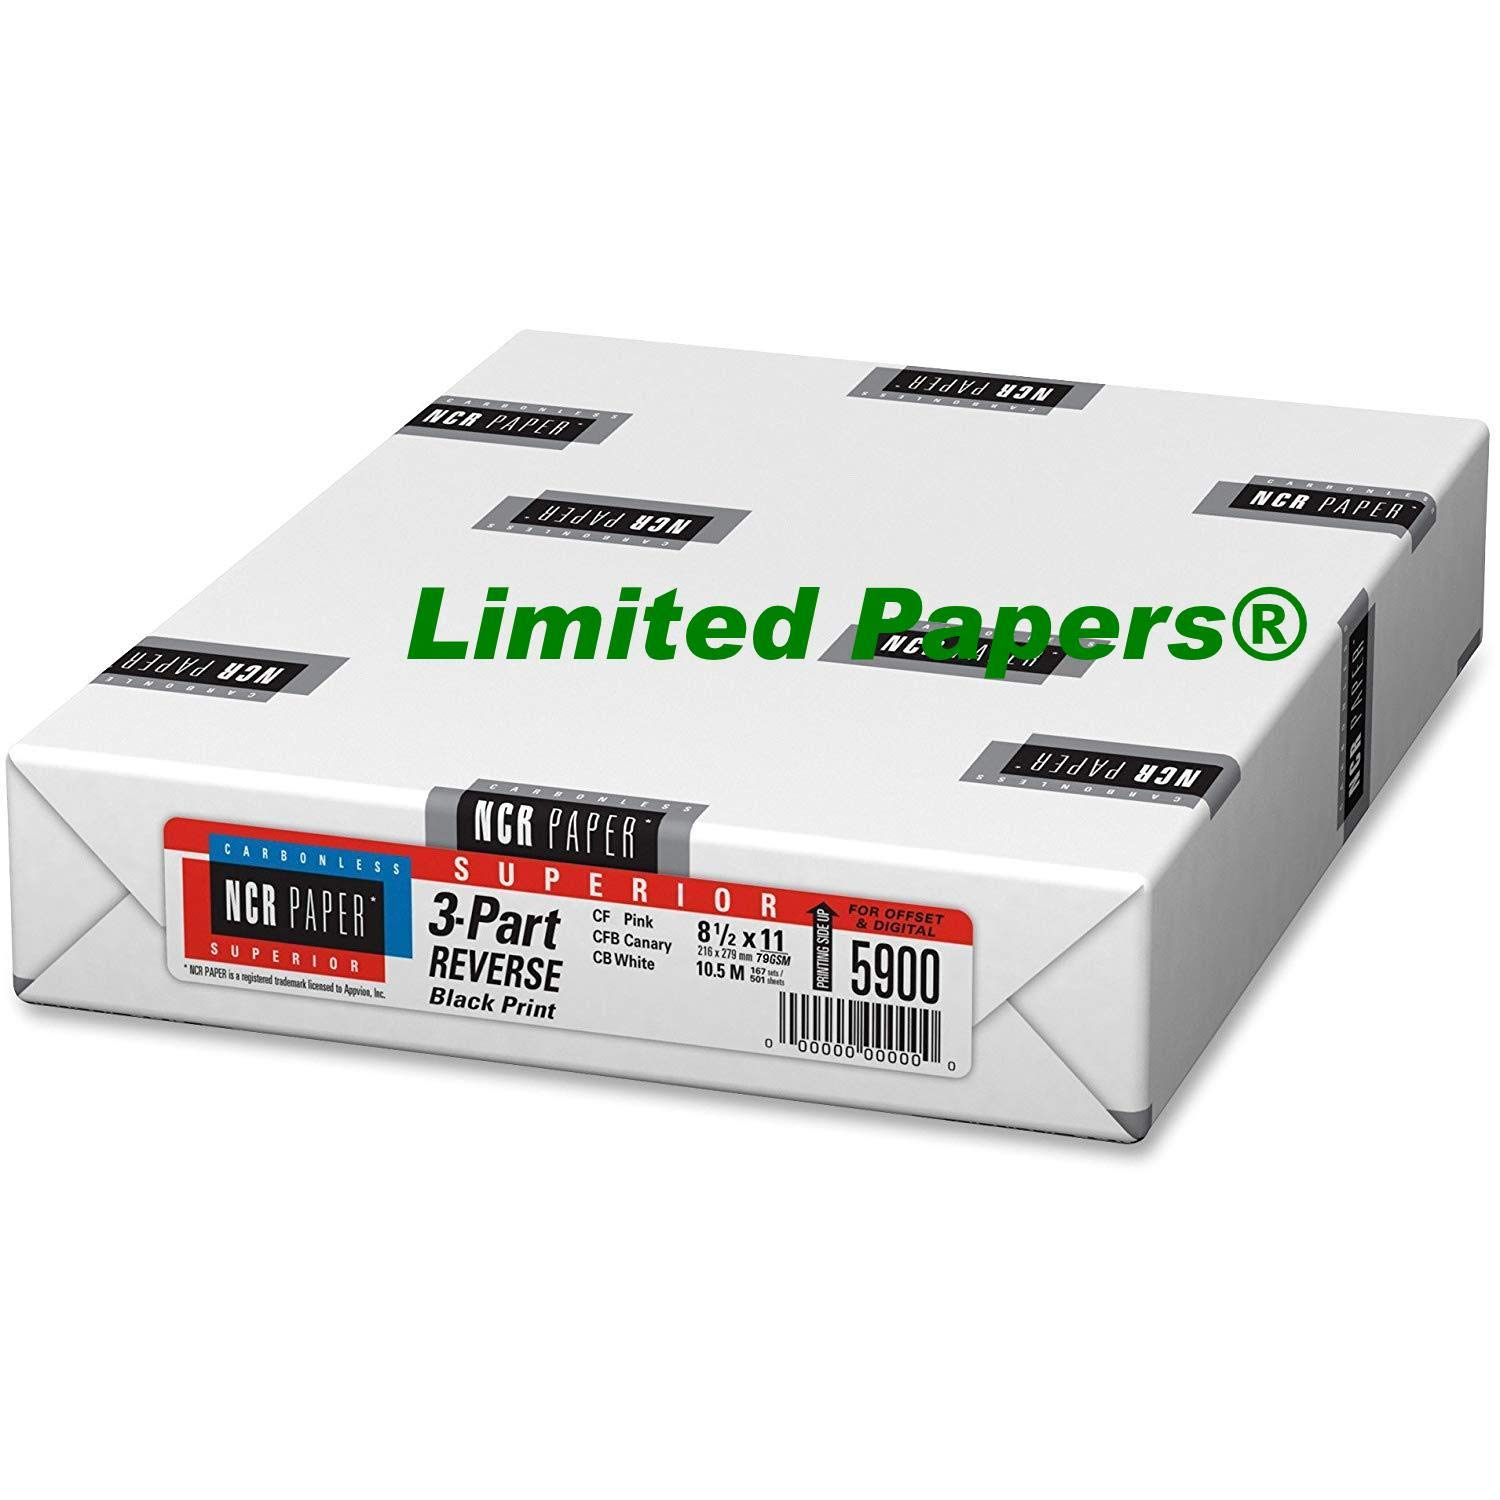 Limited Papers (TM) Appvion 5900 Reverse 3-Part Paper, 8-1/2''x11'' (10)